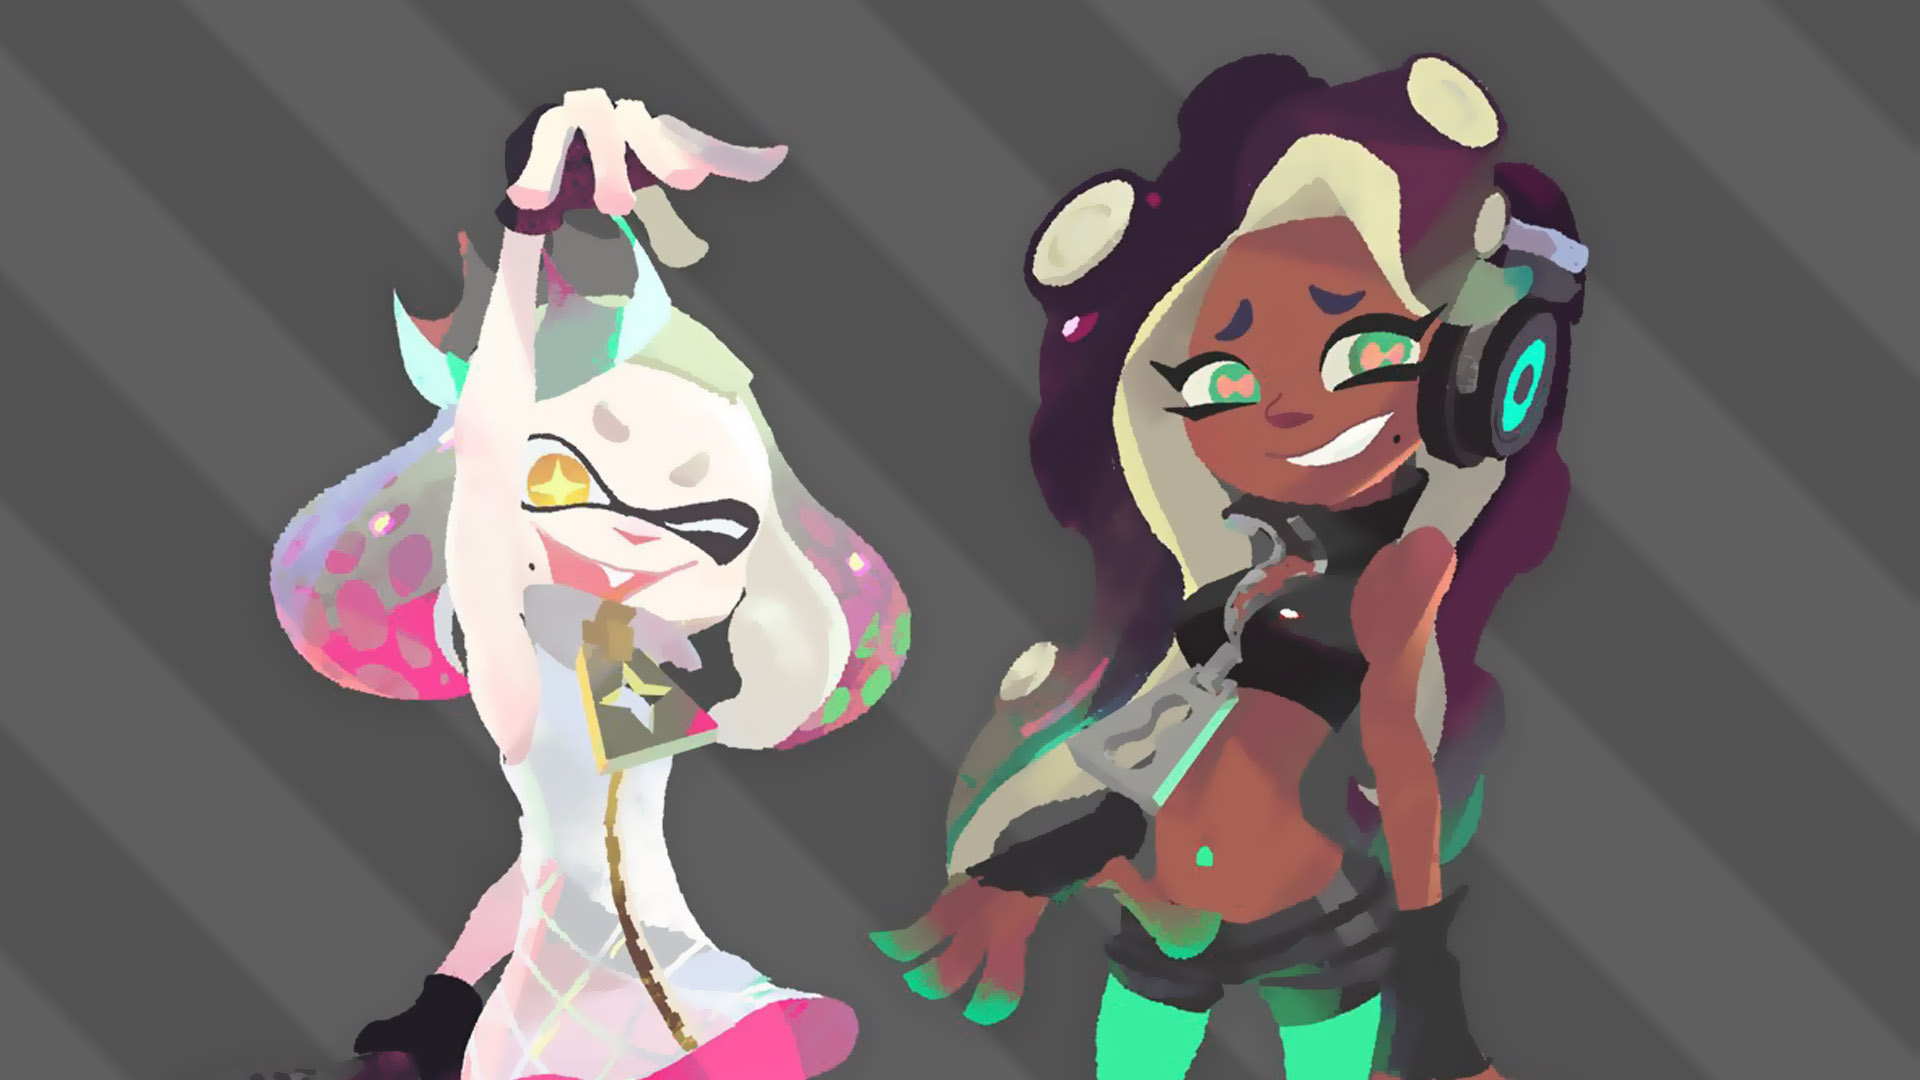 Splatoon 2 Marina Wallpaper Posted By Samantha Johnson